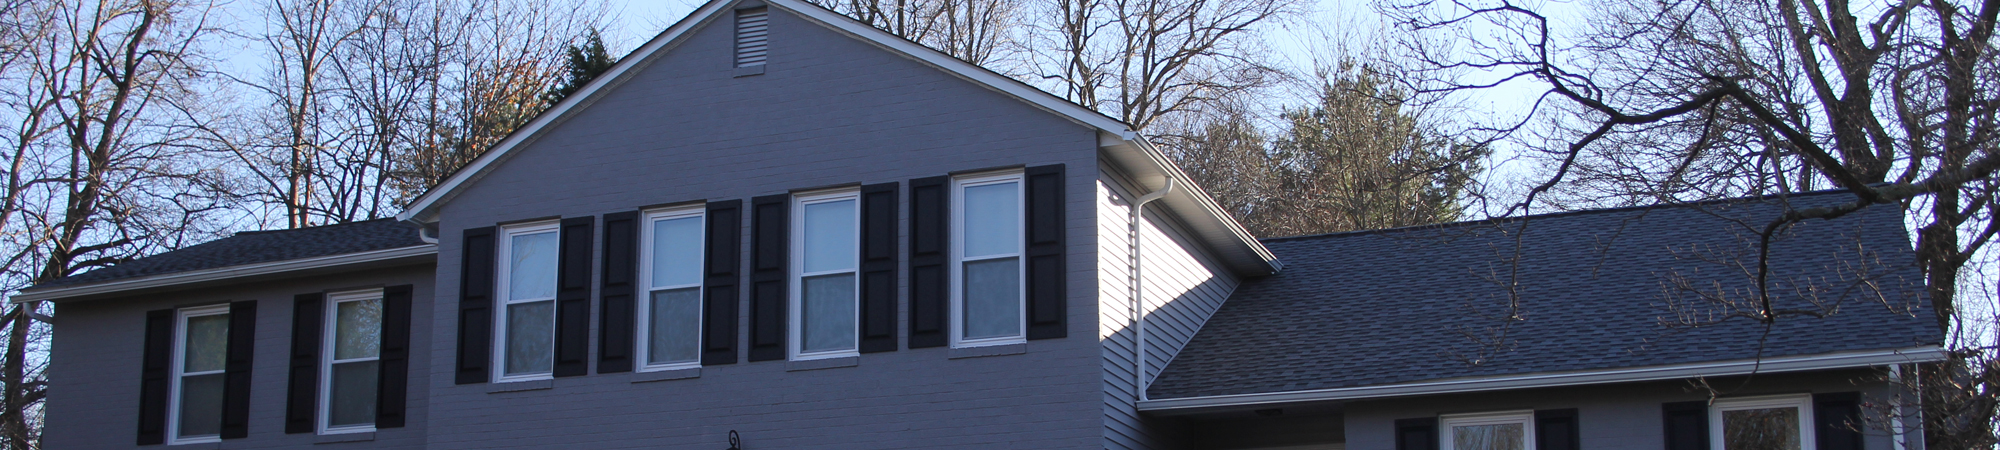 Md Window Installation Columbia Ellicott City Amp Annapolis Roofing Maryland Horizons